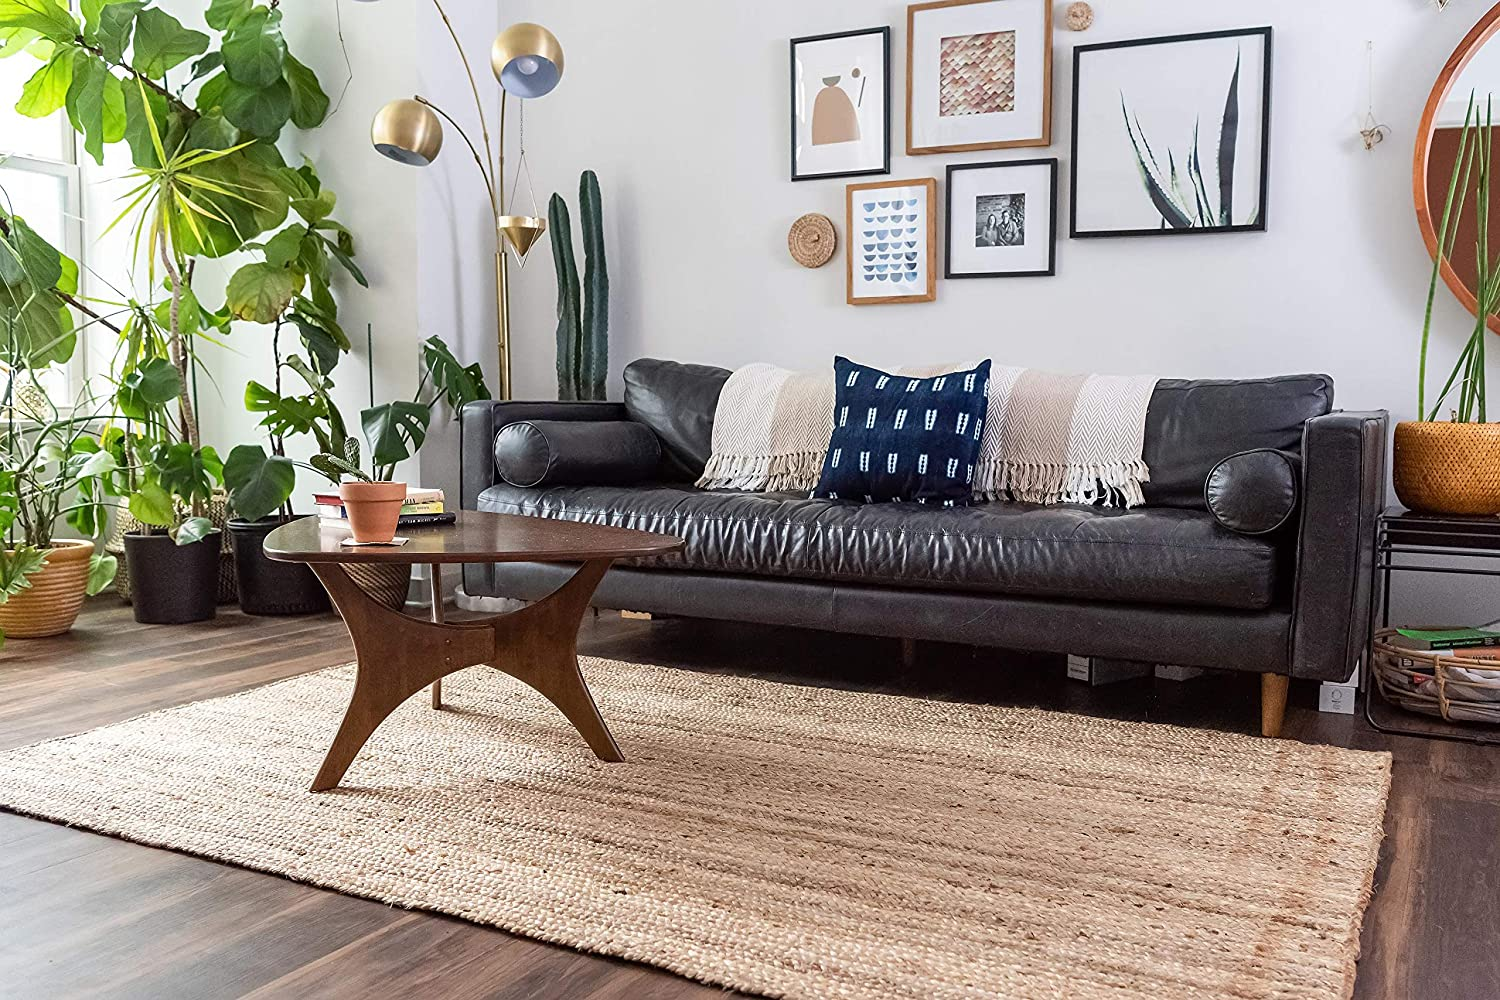 There are a lot of rugs on sale during Prime Day for more than 75% off